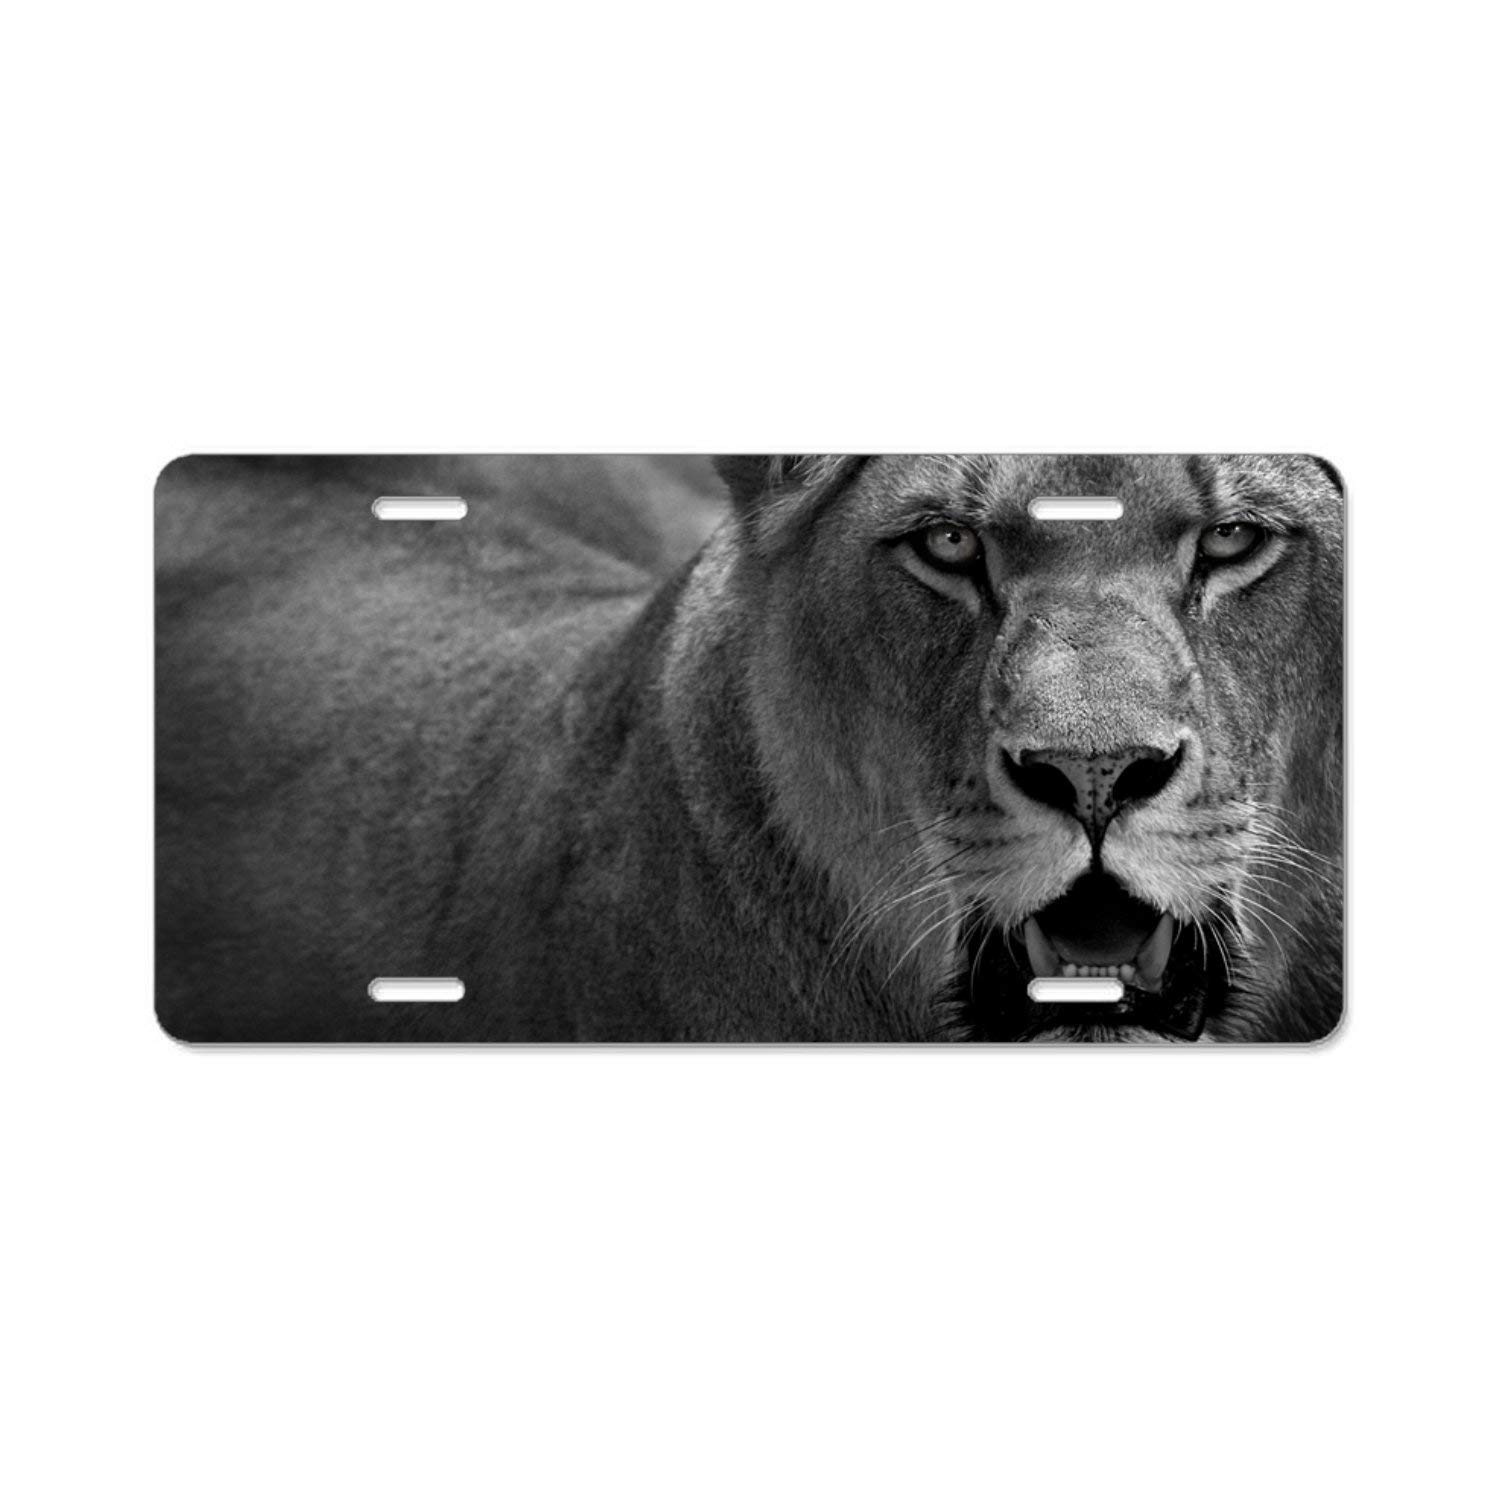 License Plate Covers & Frames Exterior Accessories Animal Cats Car License Plate Cover Framed Tag Cover Durable Aluminum License Plate Frame for Women